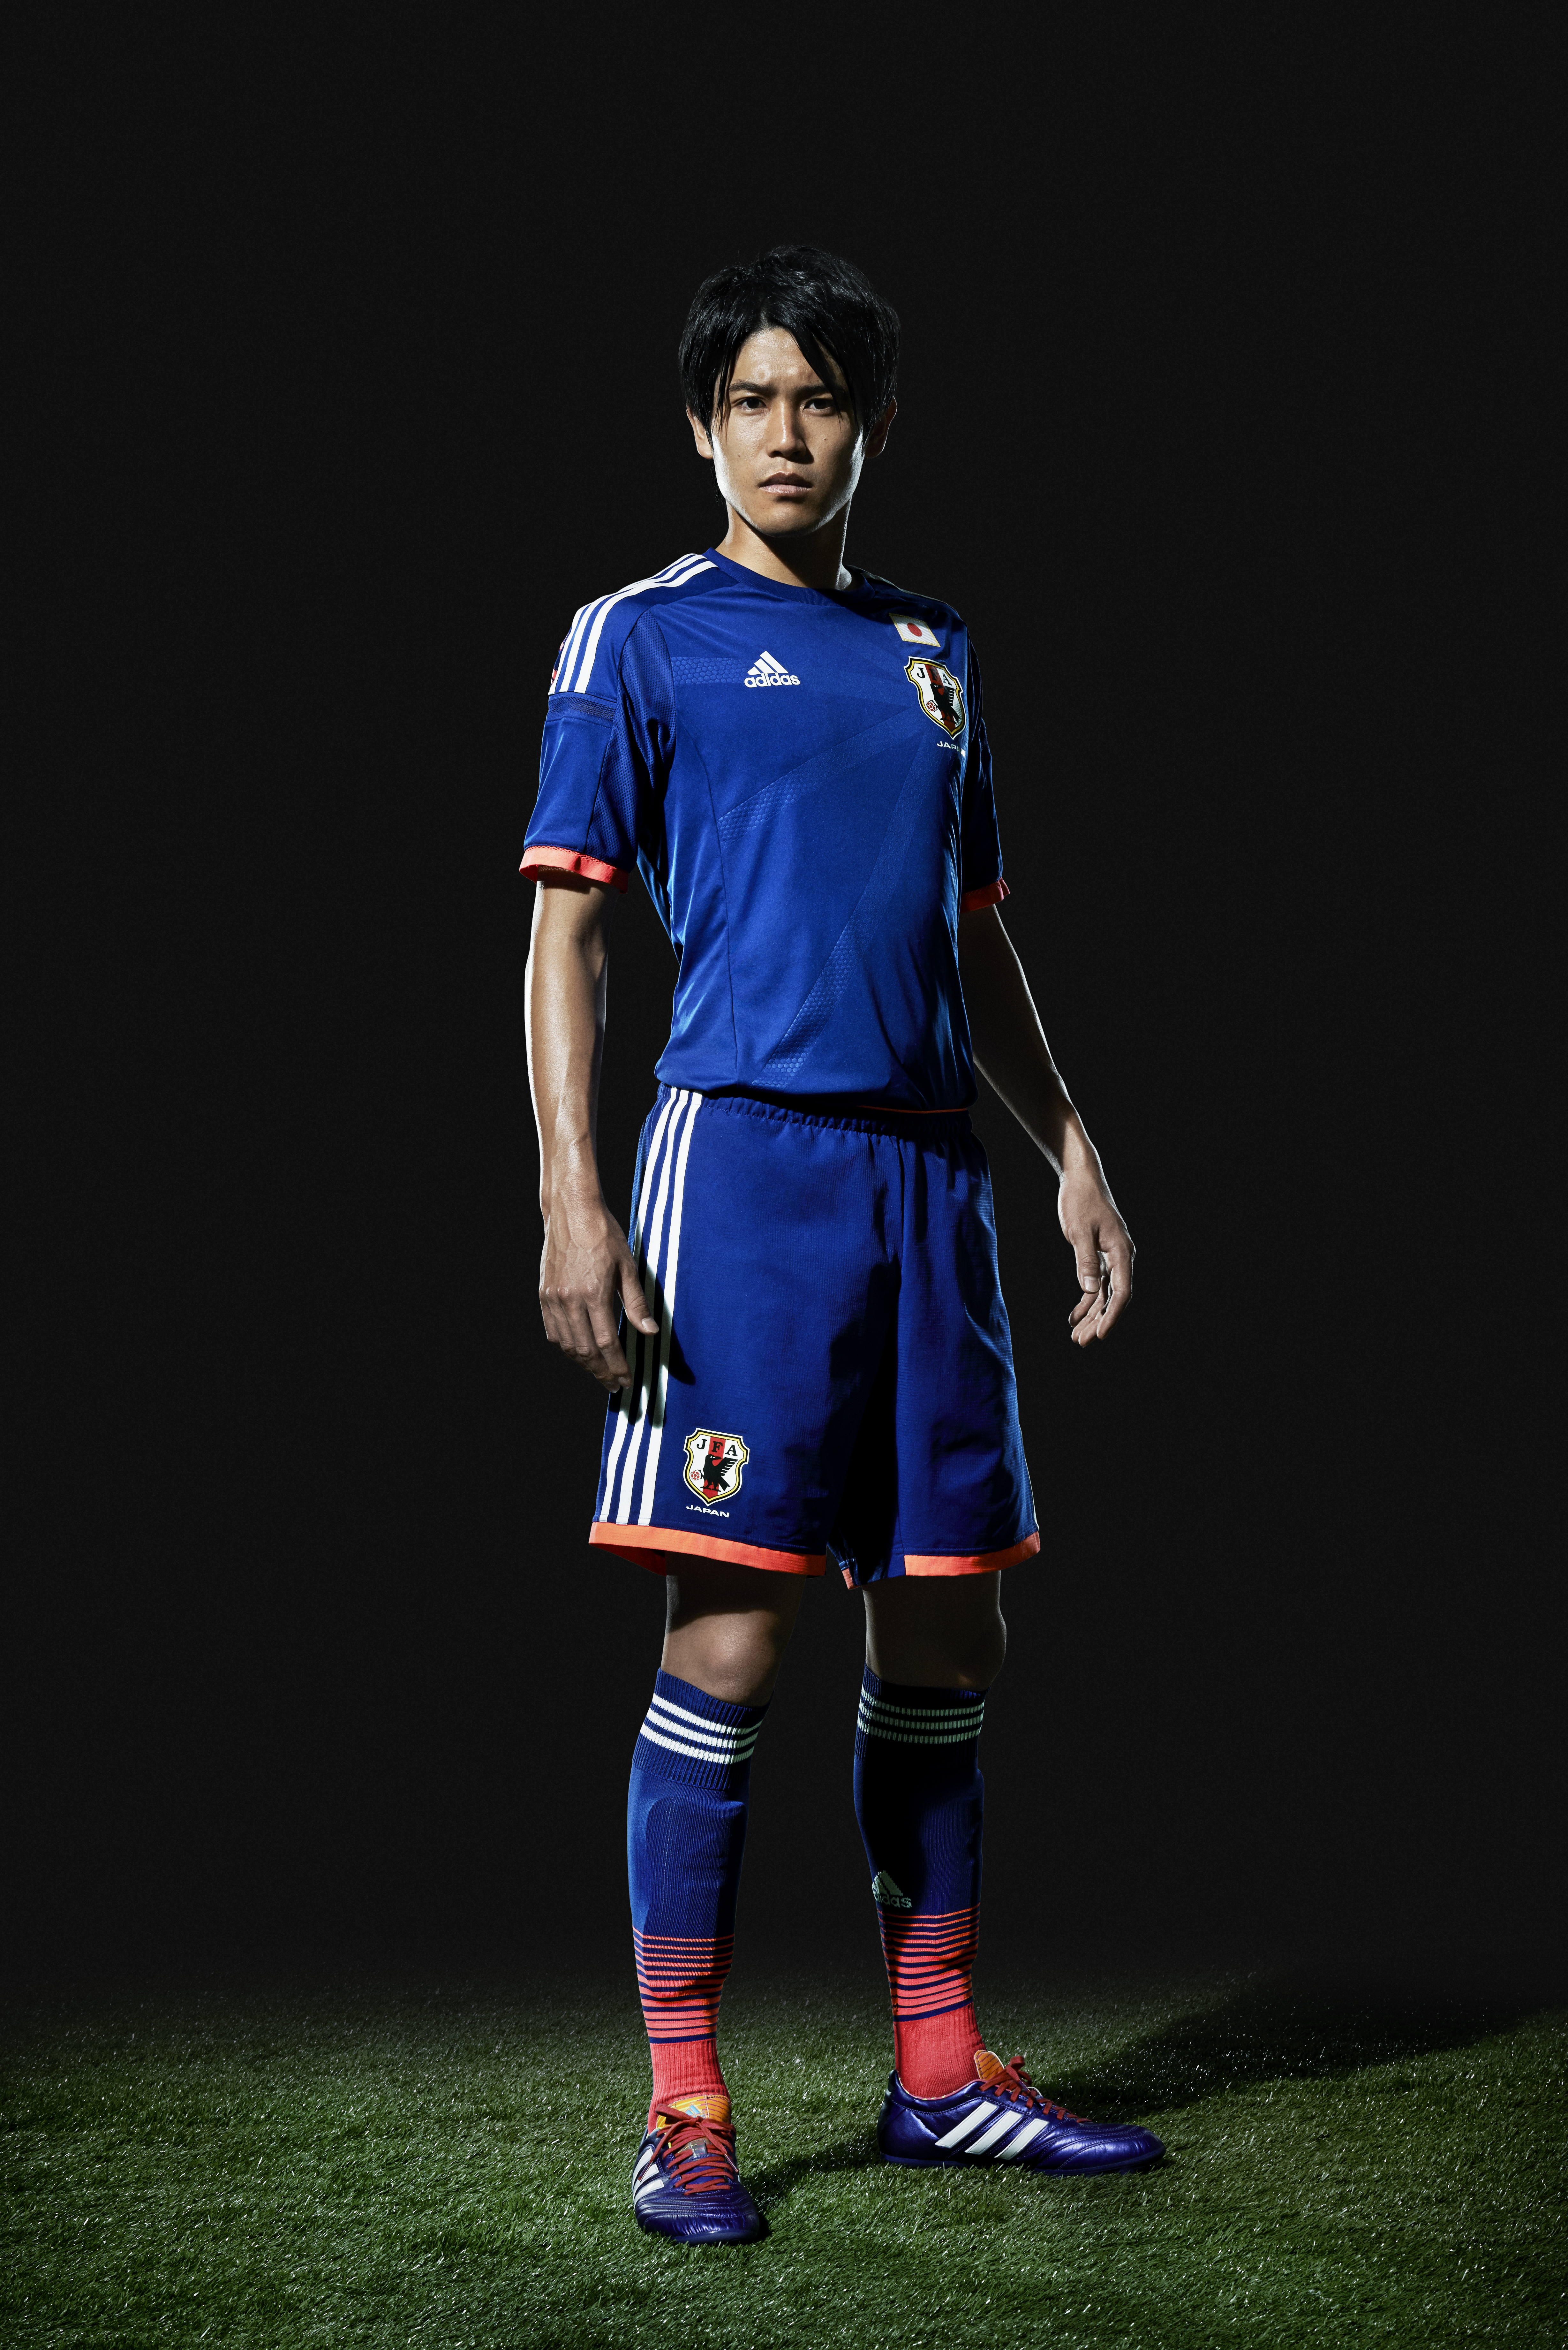 http://sportlockerdotcom.files.wordpress.com/2013/11/uchida.jpg